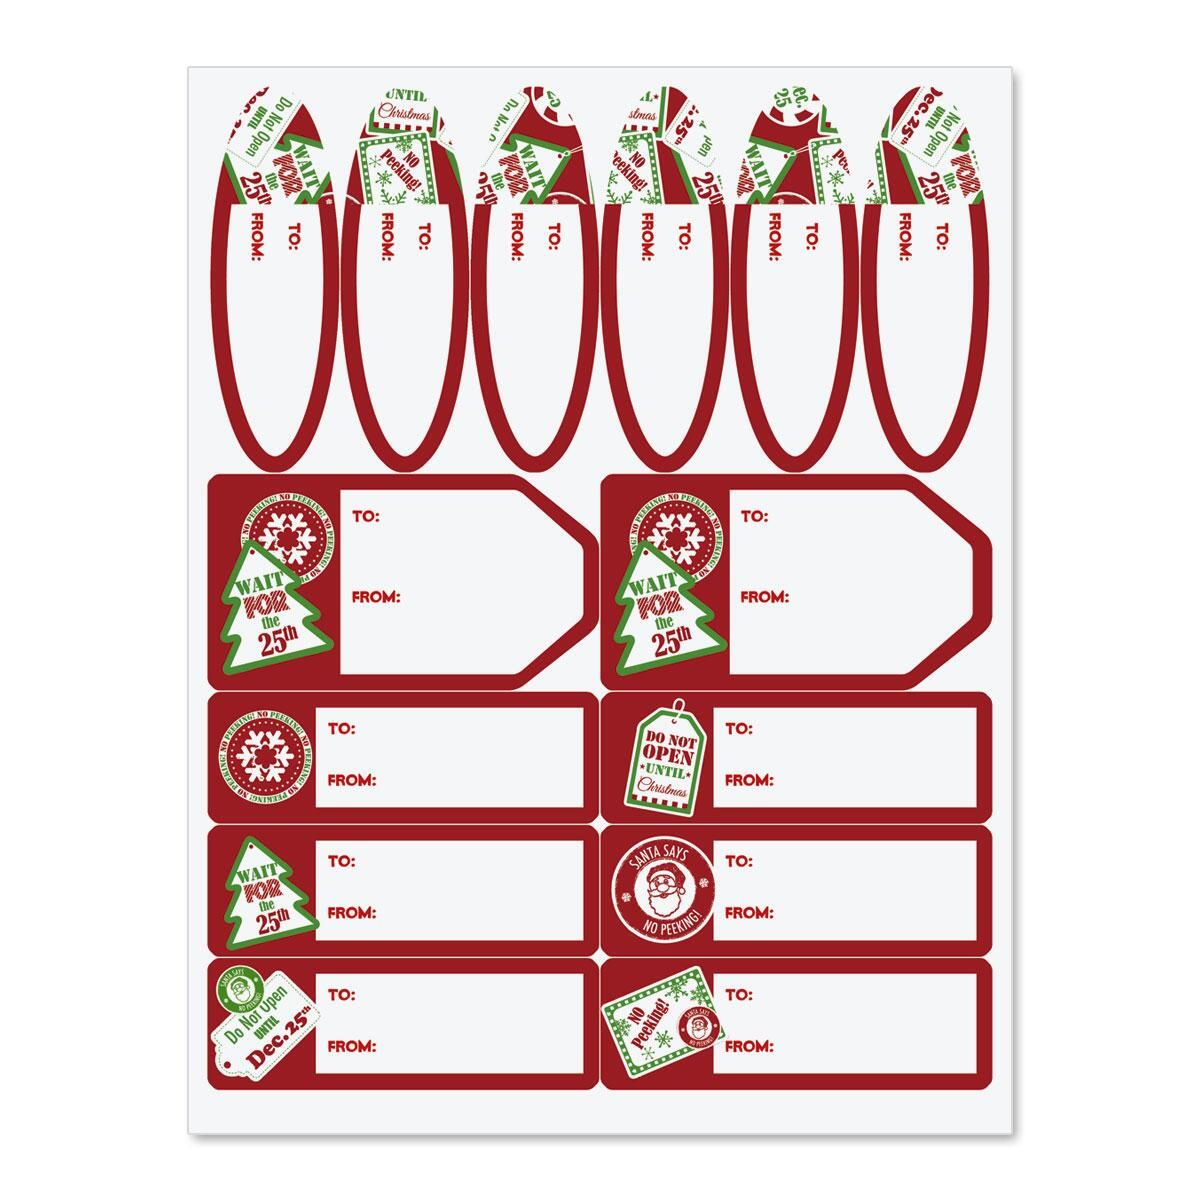 Christmas Labels.Do Not Open Until Christmas Gift Labels